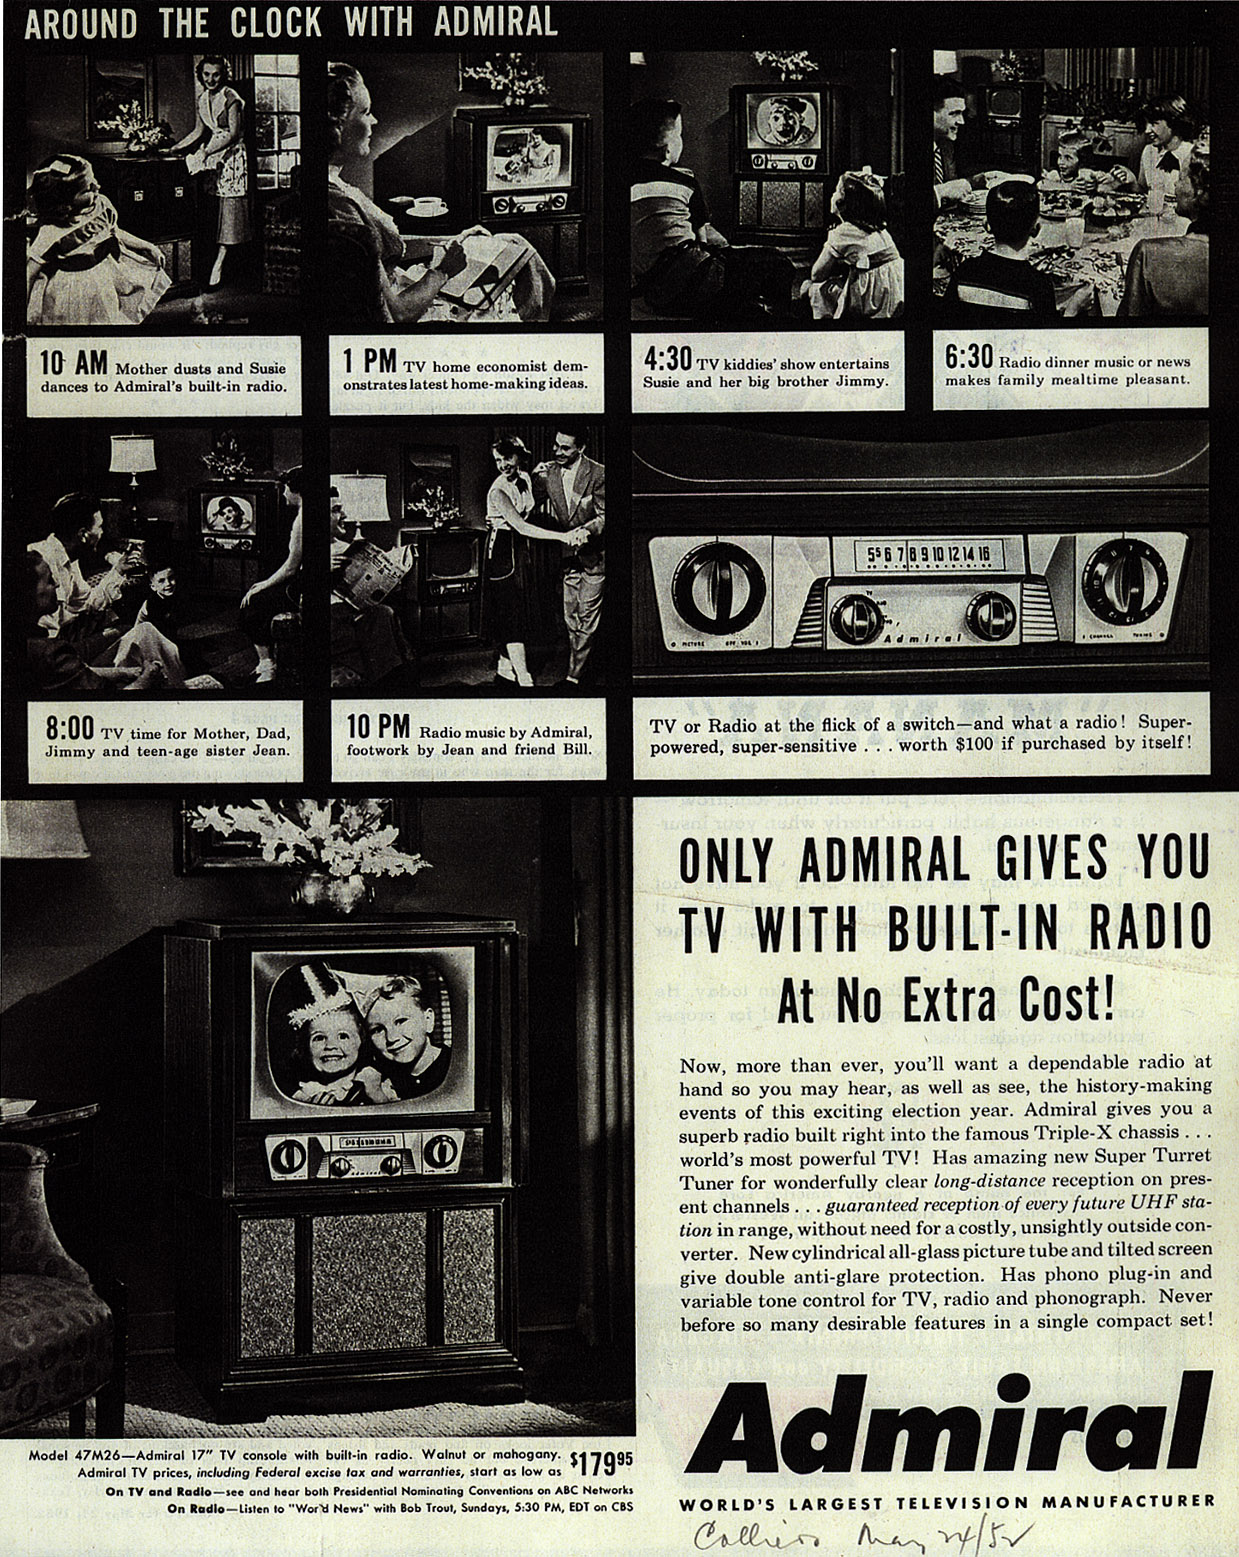 Only_Admiral_Gives_You_TV_With_Built-In_Radio_At_No_Extra_Cost